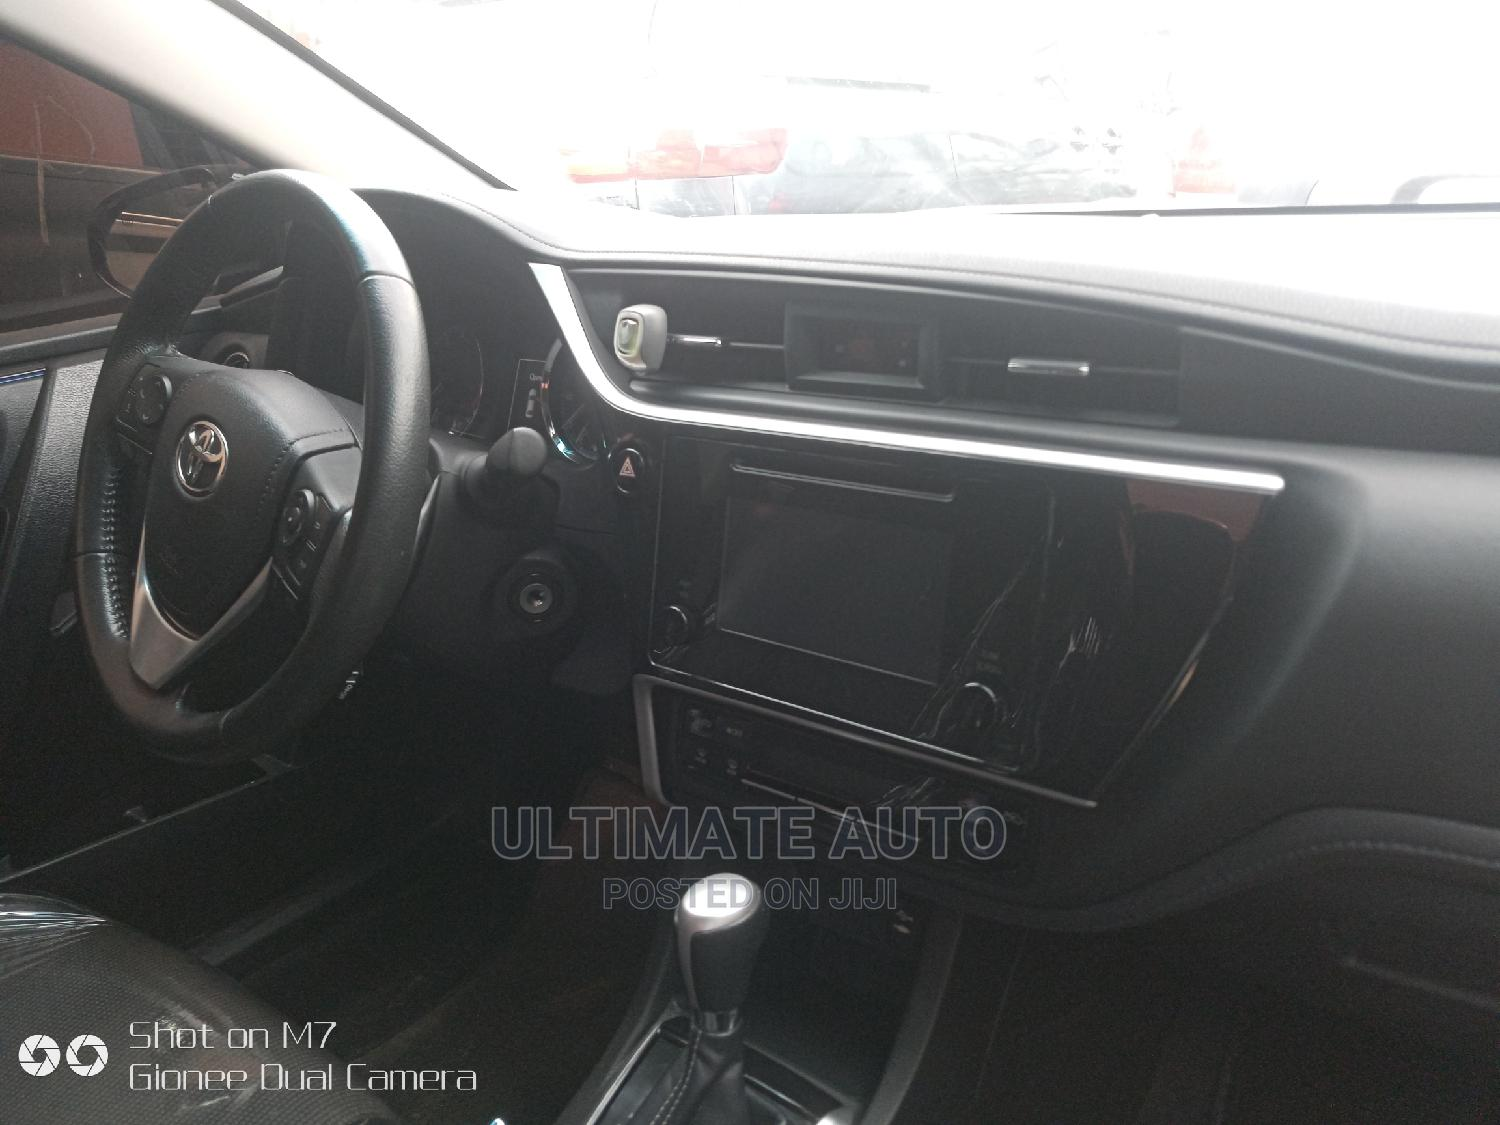 Toyota Corolla 2019 SE (1.8L 4cyl 6M) Black | Cars for sale in Apapa, Lagos State, Nigeria